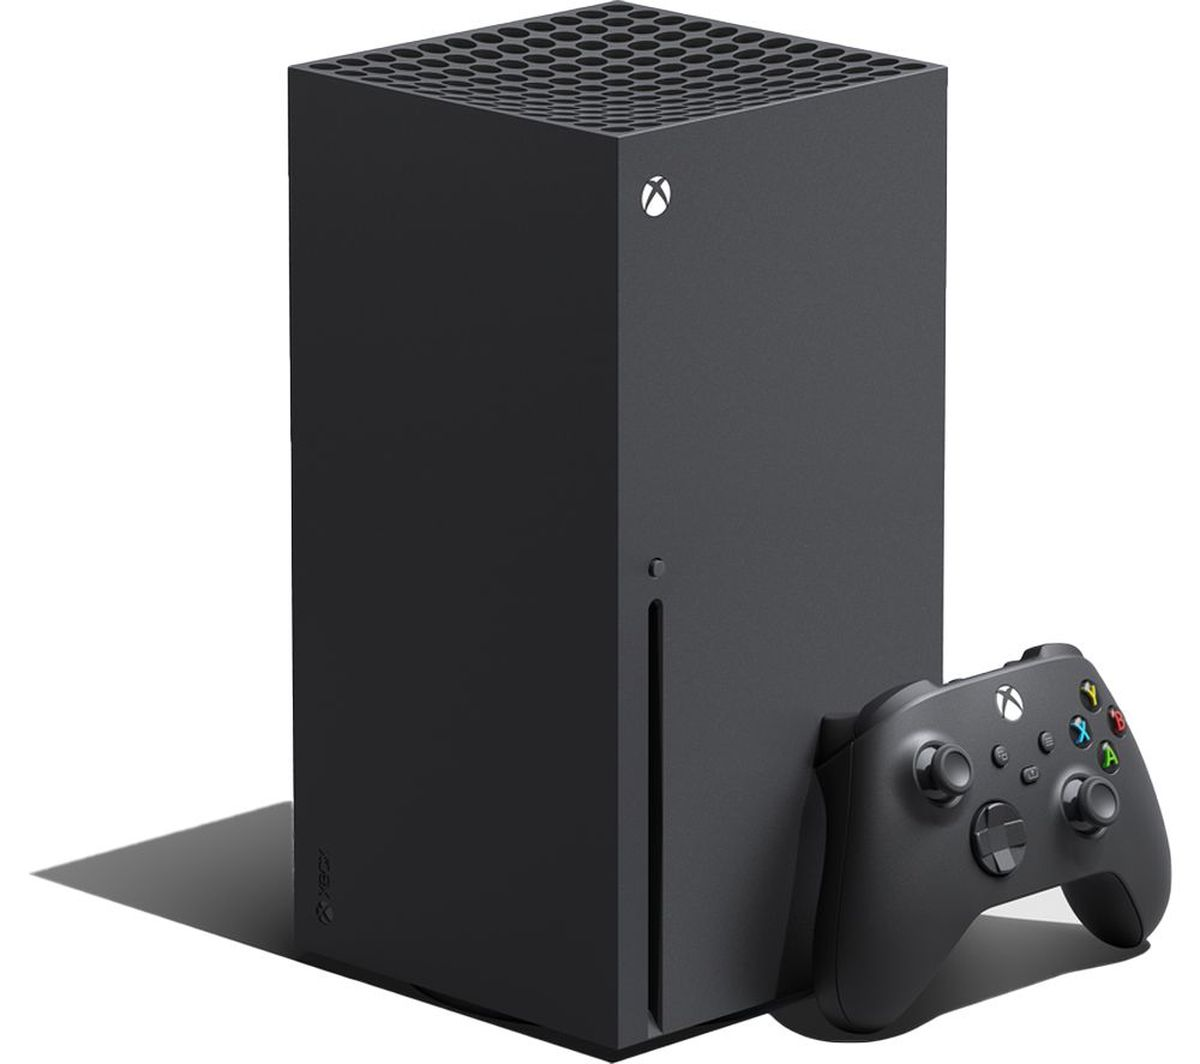 An XBox X fetched £19,000 on Ebay this week